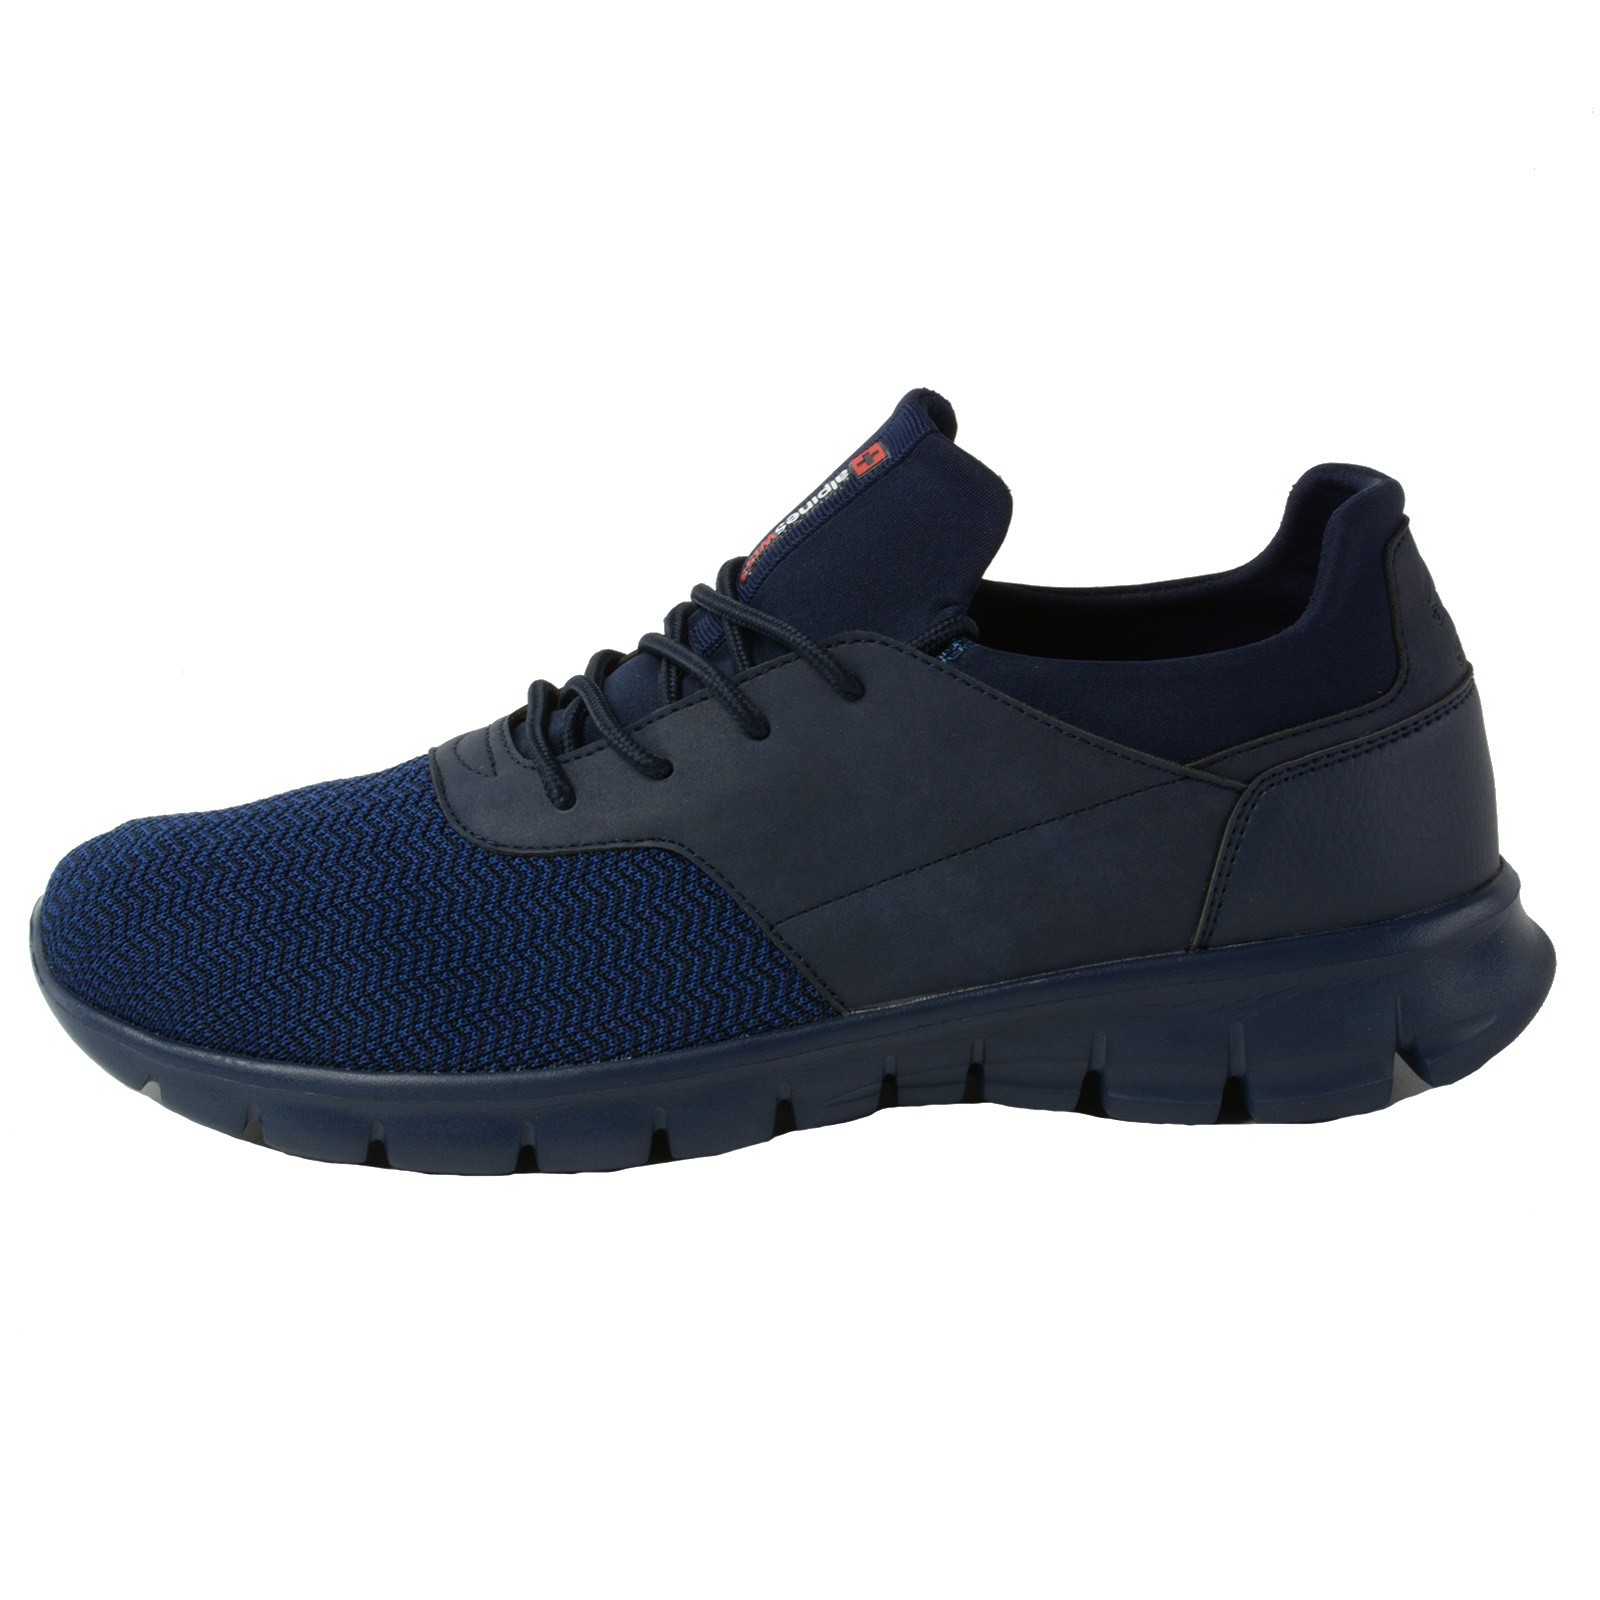 Alpine-Swiss-Leo-Men-Sneakers-Flex-Knit-Tennis-Shoes-Casual-Athletic-Lightweight thumbnail 27